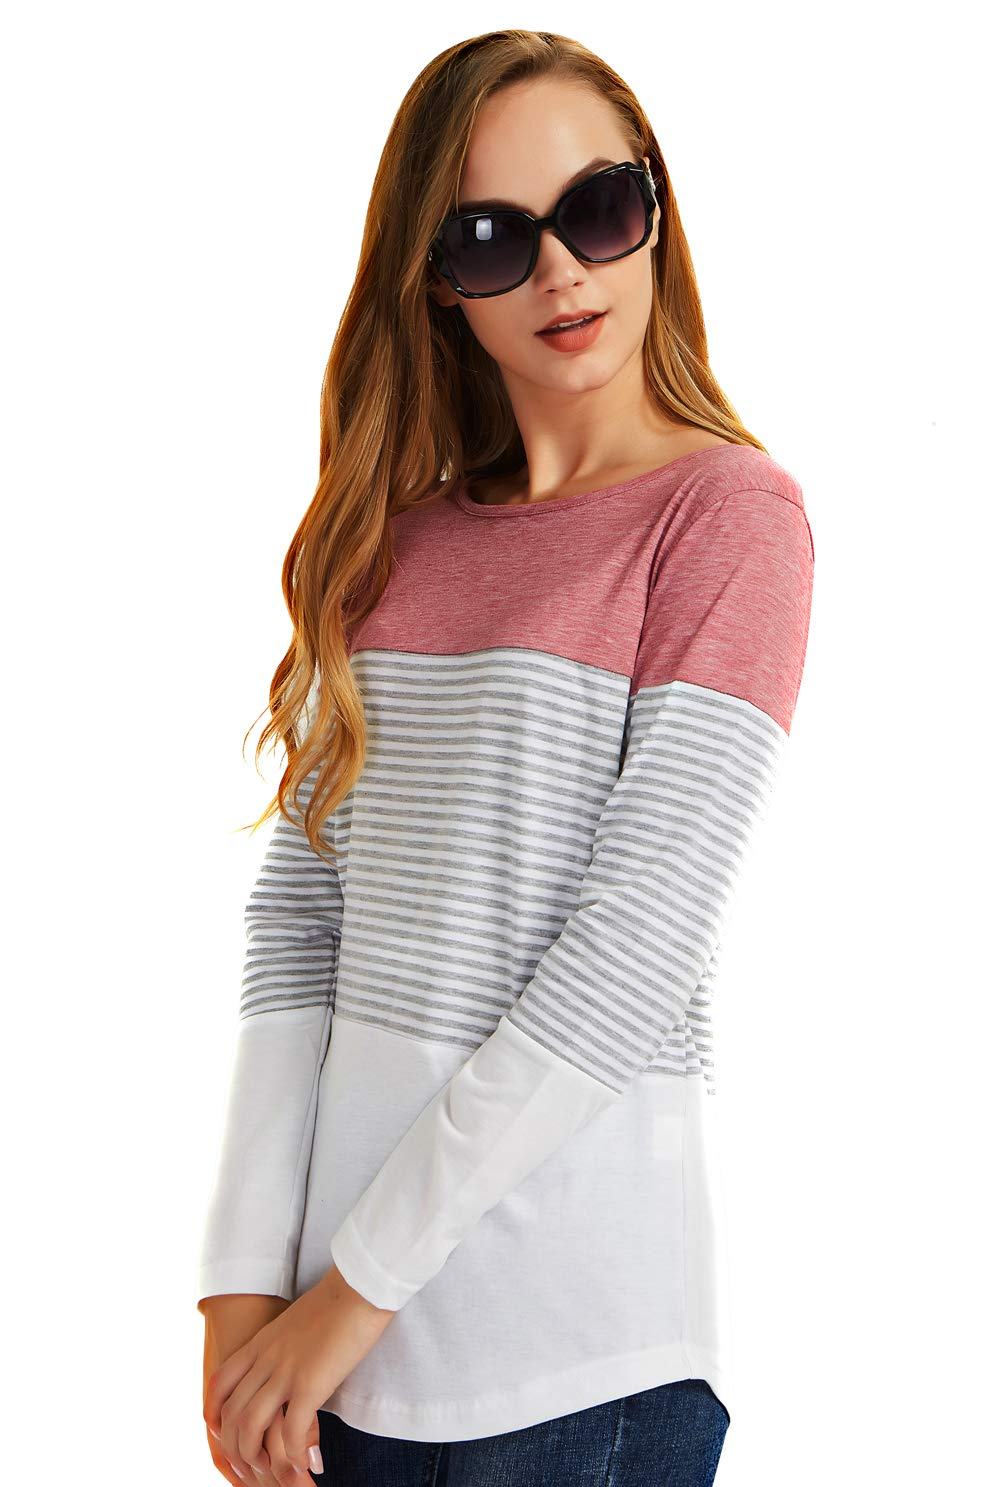 Round Neck Blouses T-Shirts for Women Long Sleeve Pullover Tops Casual Shirts XL